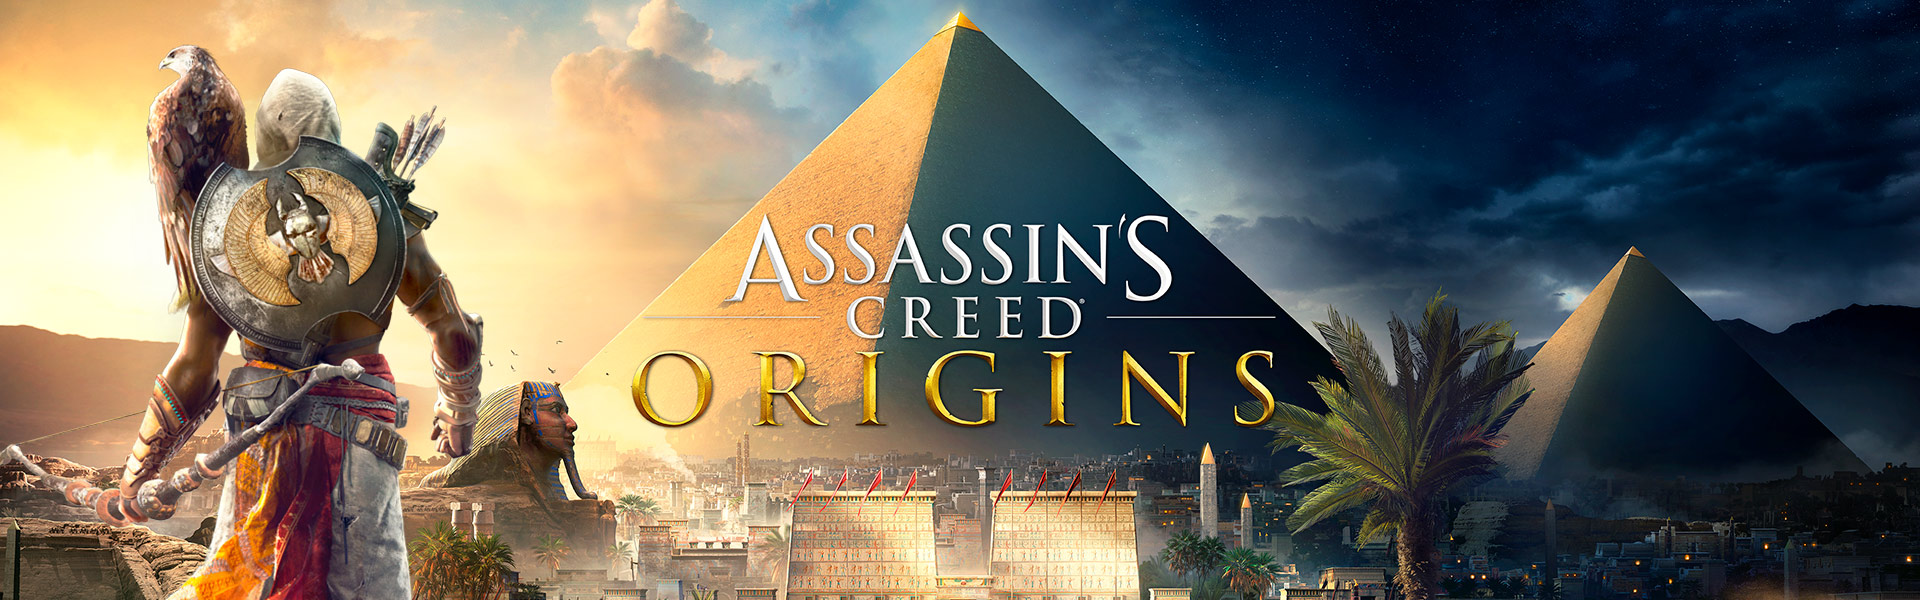 Assassin's Creed Origins (Uplay) wholesale price